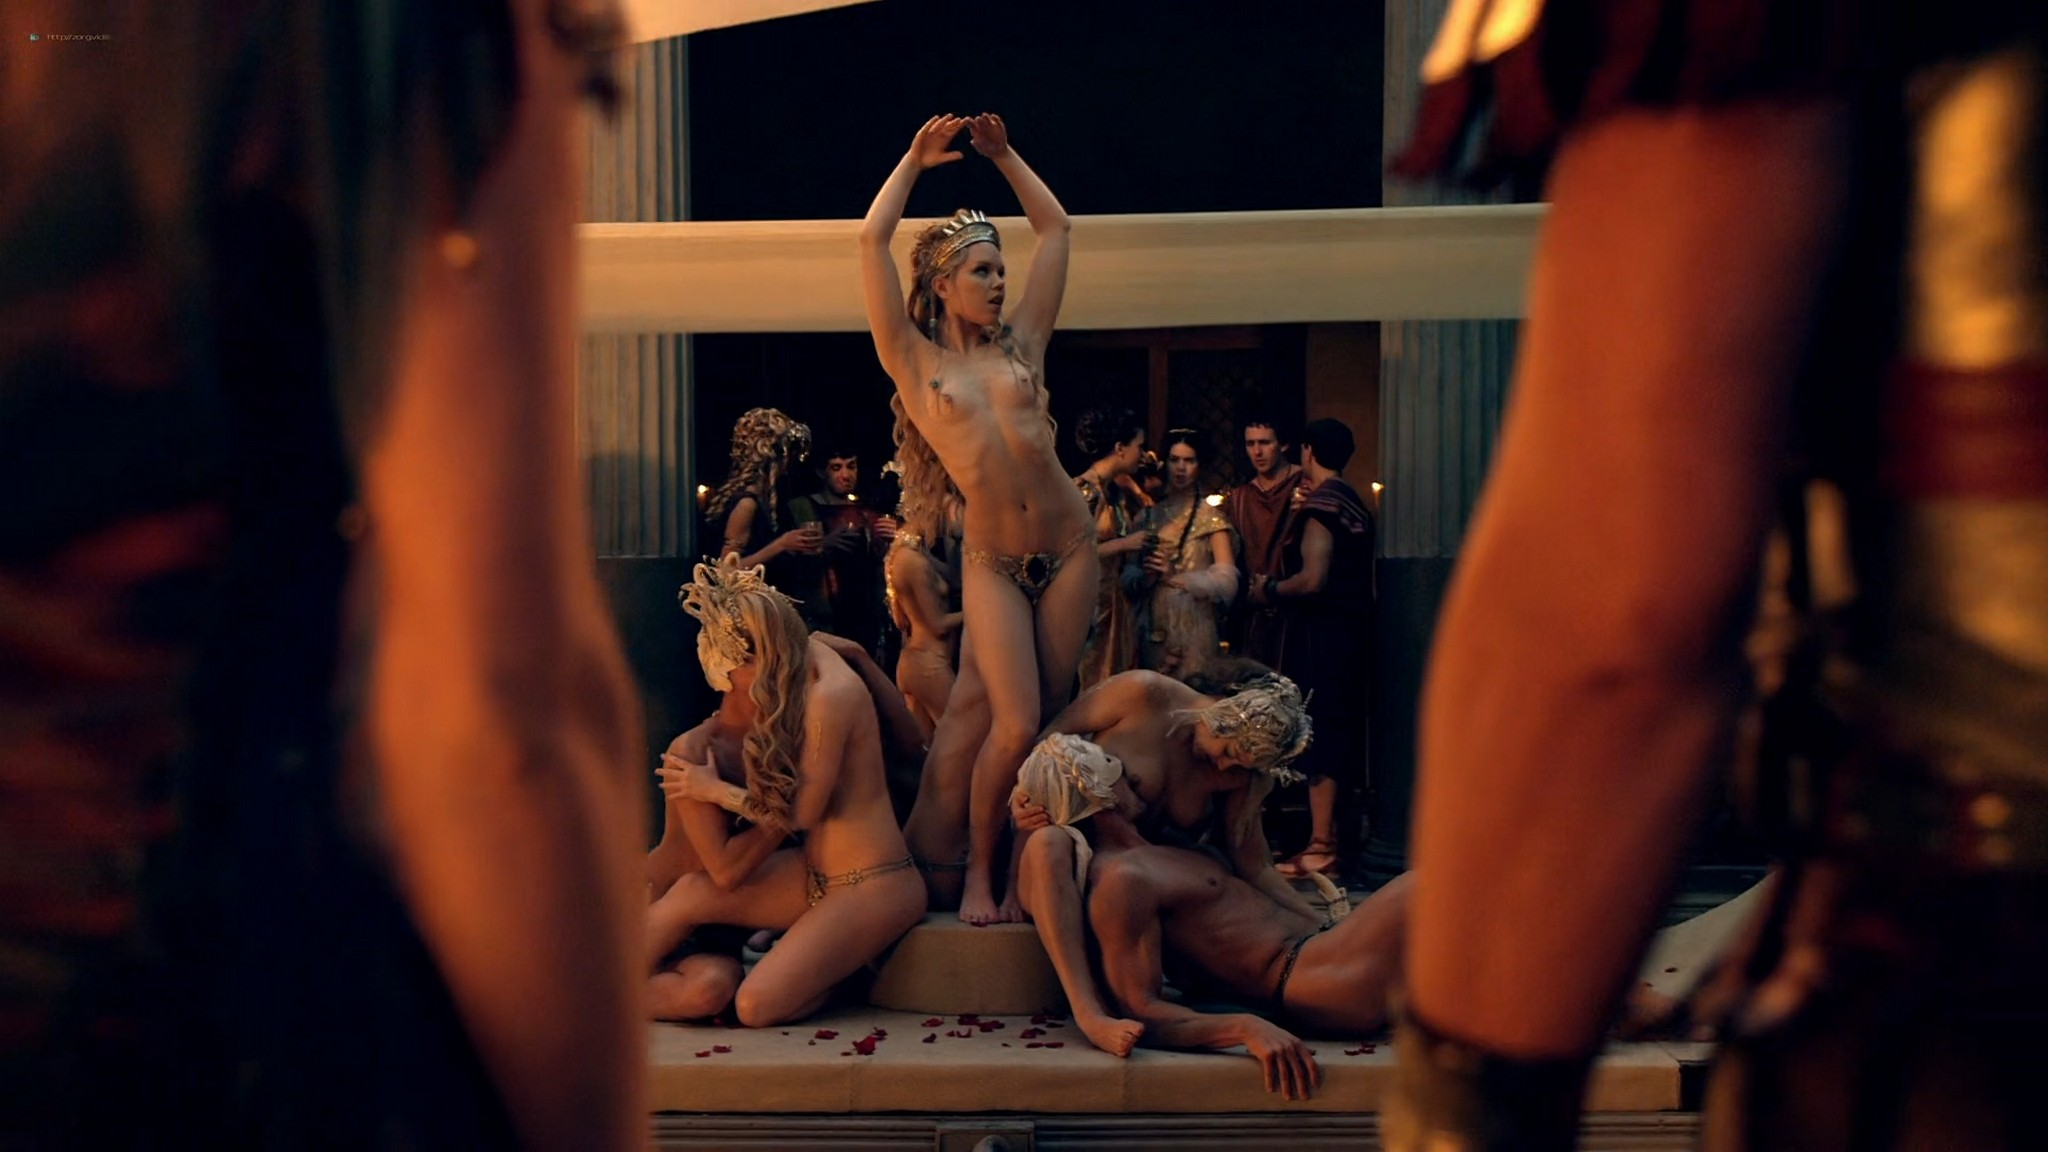 Viva Bianca nude Lucy Lawless nude sex others nude - Spartacus - Vengeance (2012) e4 1080p BluRay (13)